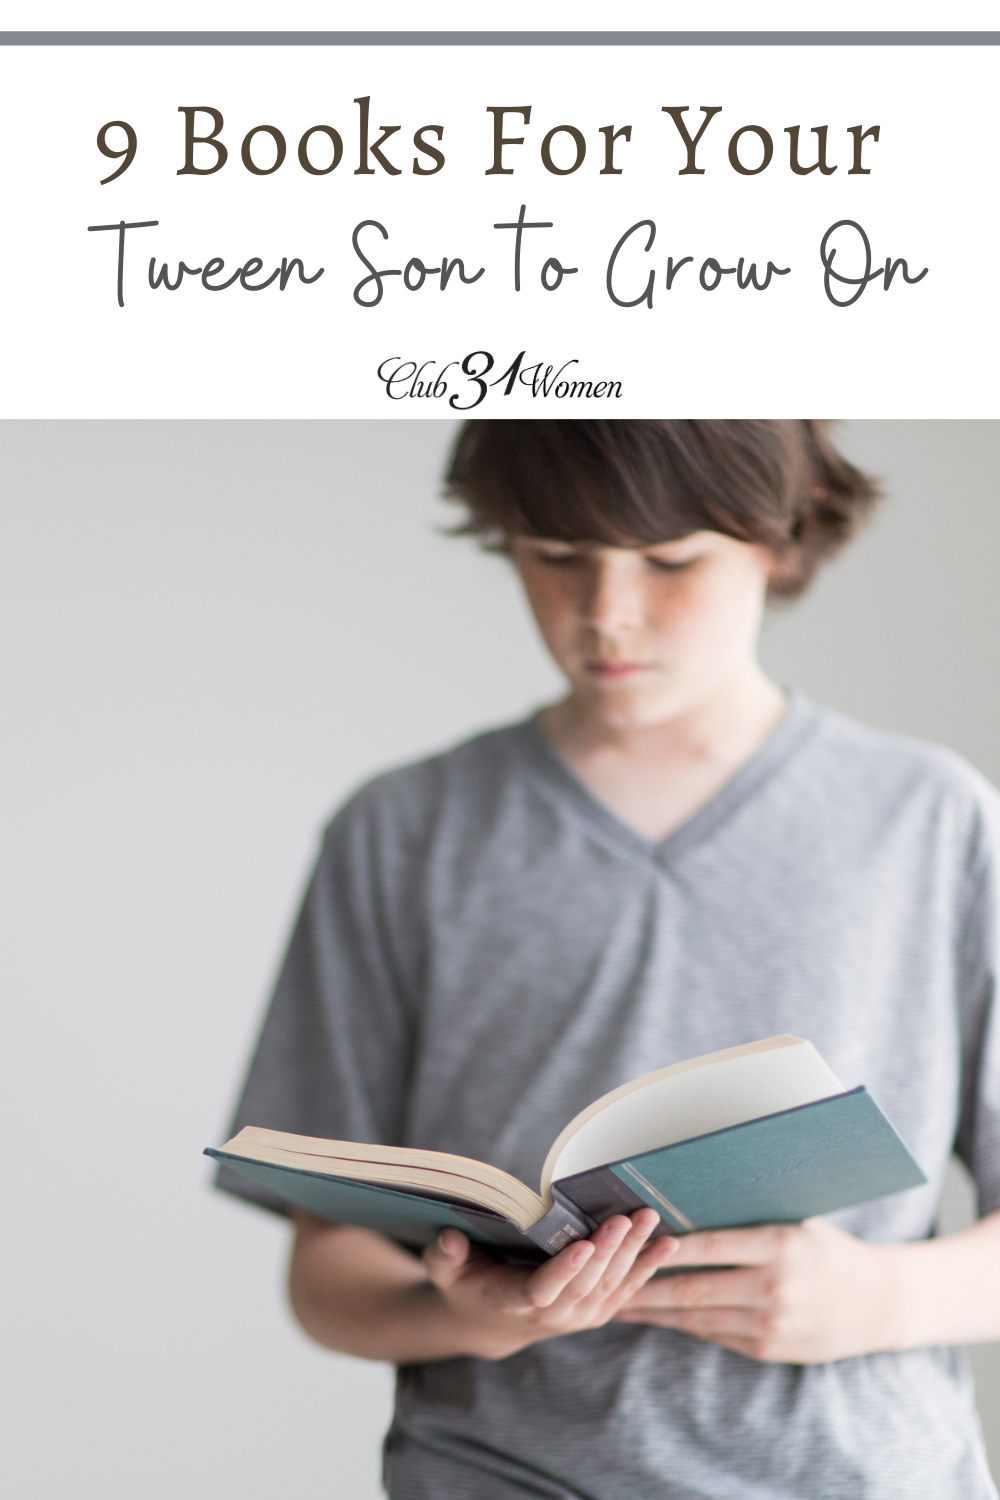 It can be so challenging to find excellent reading material for your tween boy. But here is a fabulous list of extraordinary books to get you started! via @Club31Women